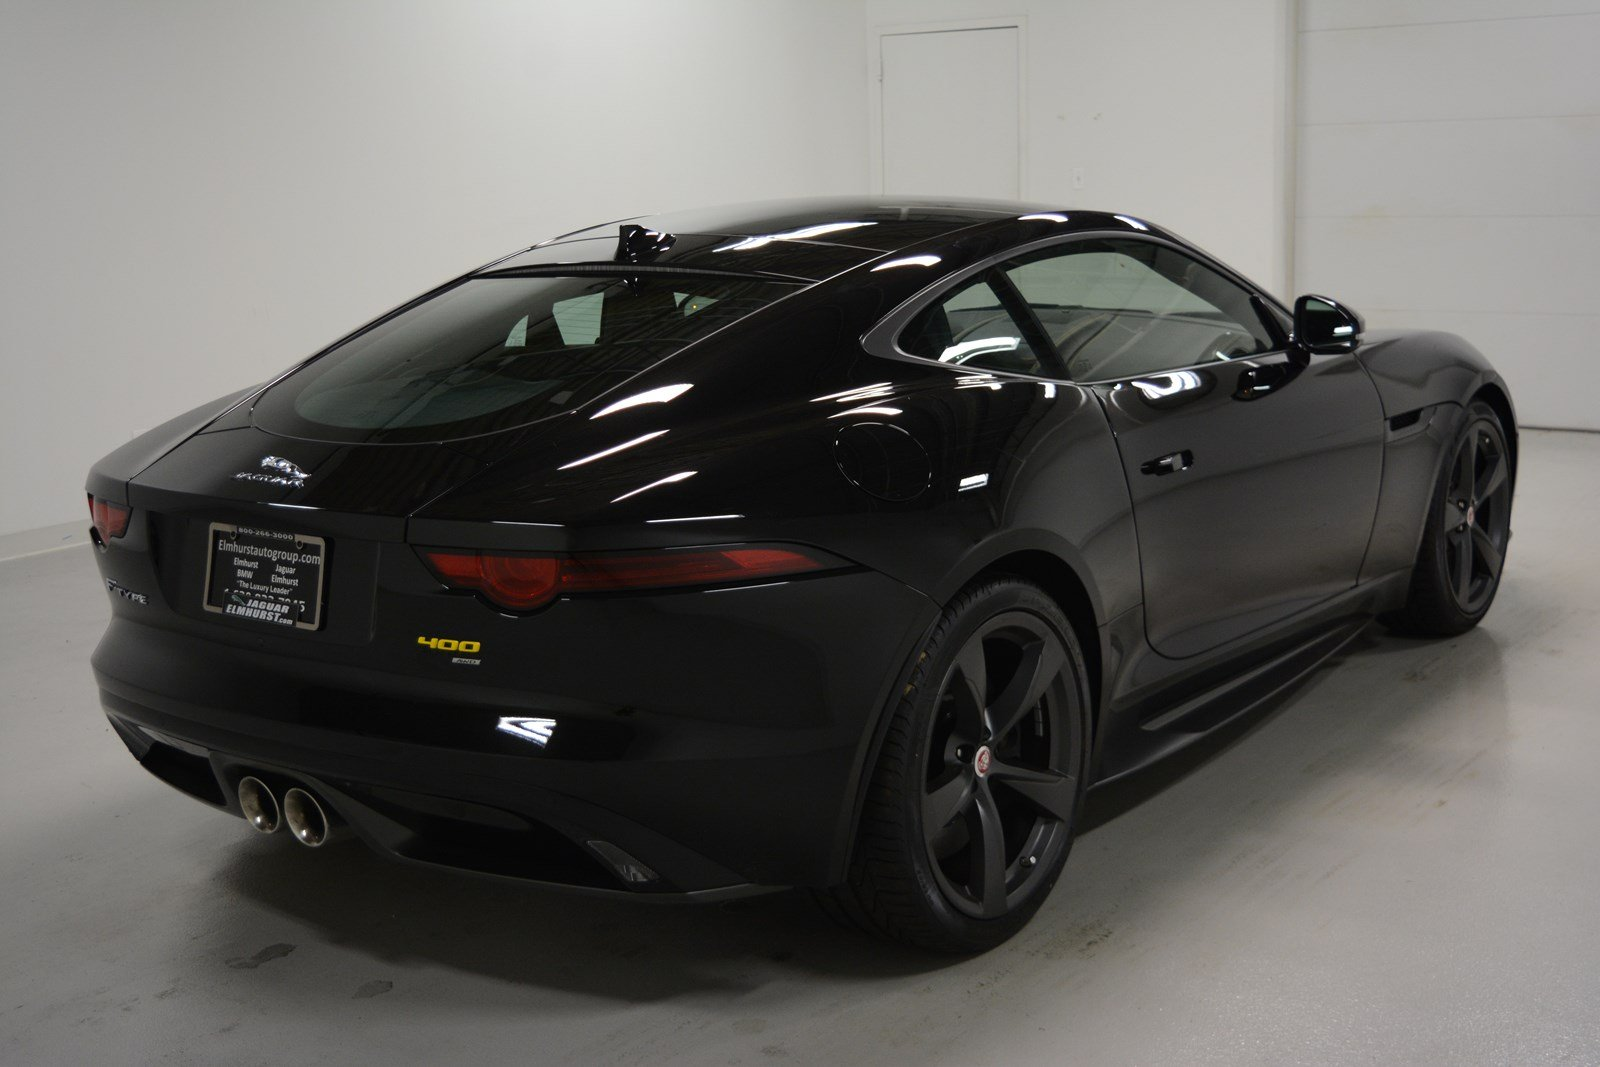 new 2018 jaguar f type 400 sport 2dr car in elmhurst j1643 jaguar elmhurst. Black Bedroom Furniture Sets. Home Design Ideas